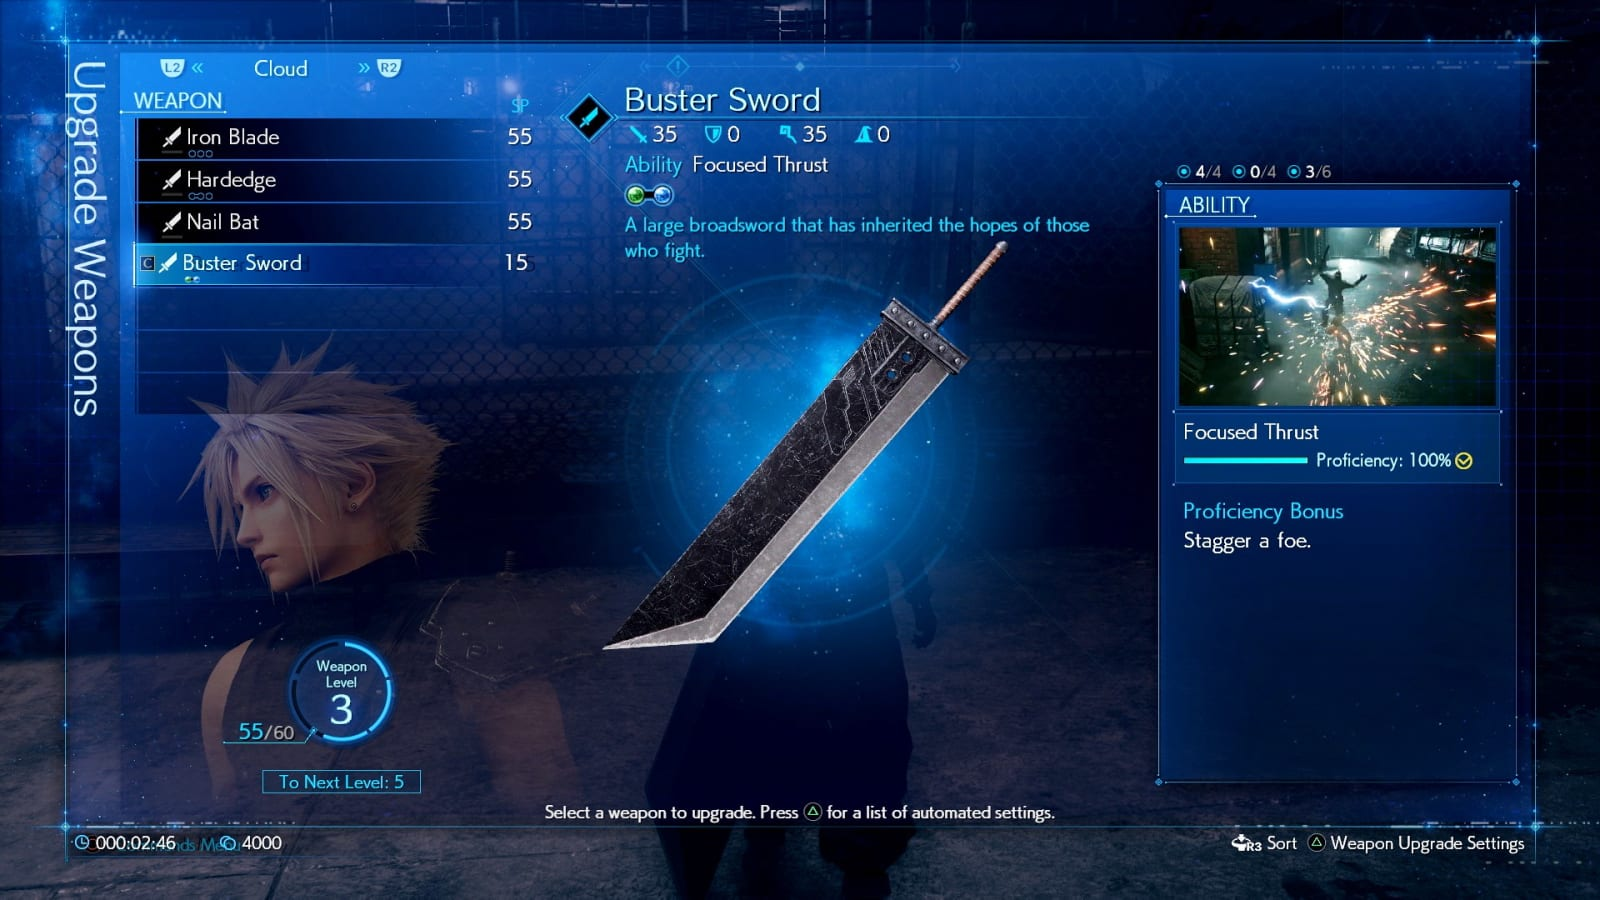 Final Fantasy VII remake new weapons interface